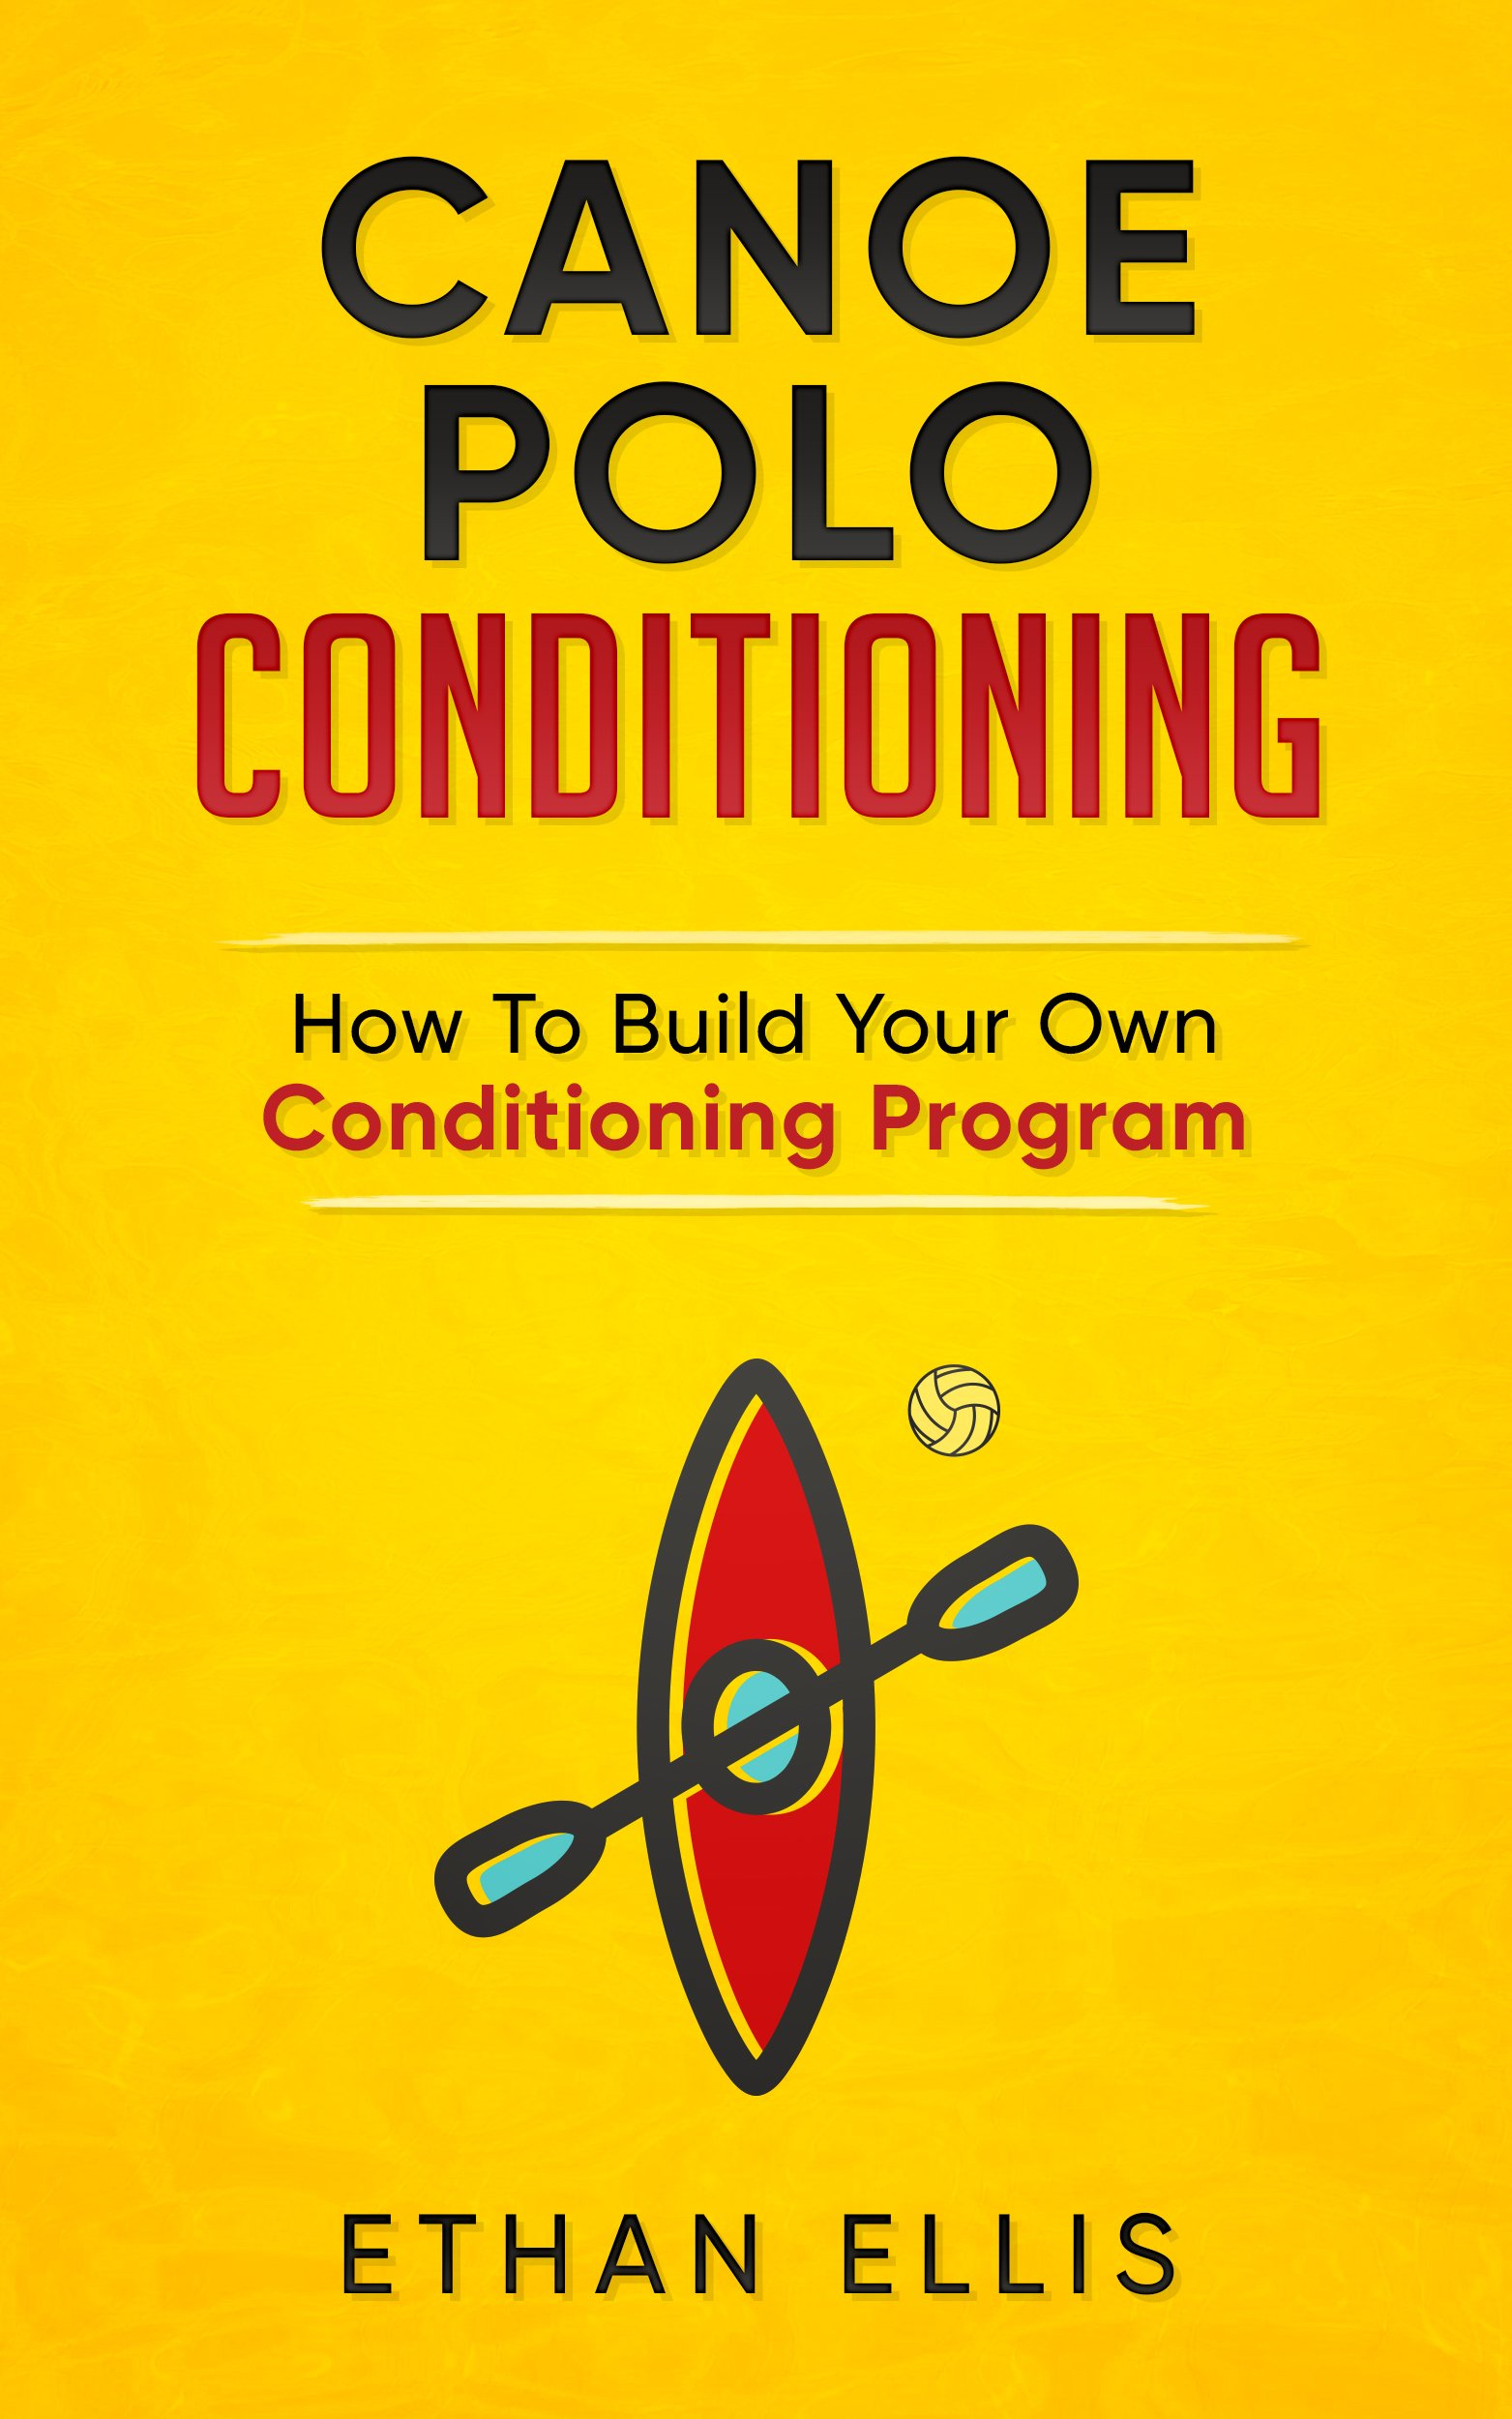 Canoe Polo Conditioning: How To Build Your Own Conditioning Program (English Edition)